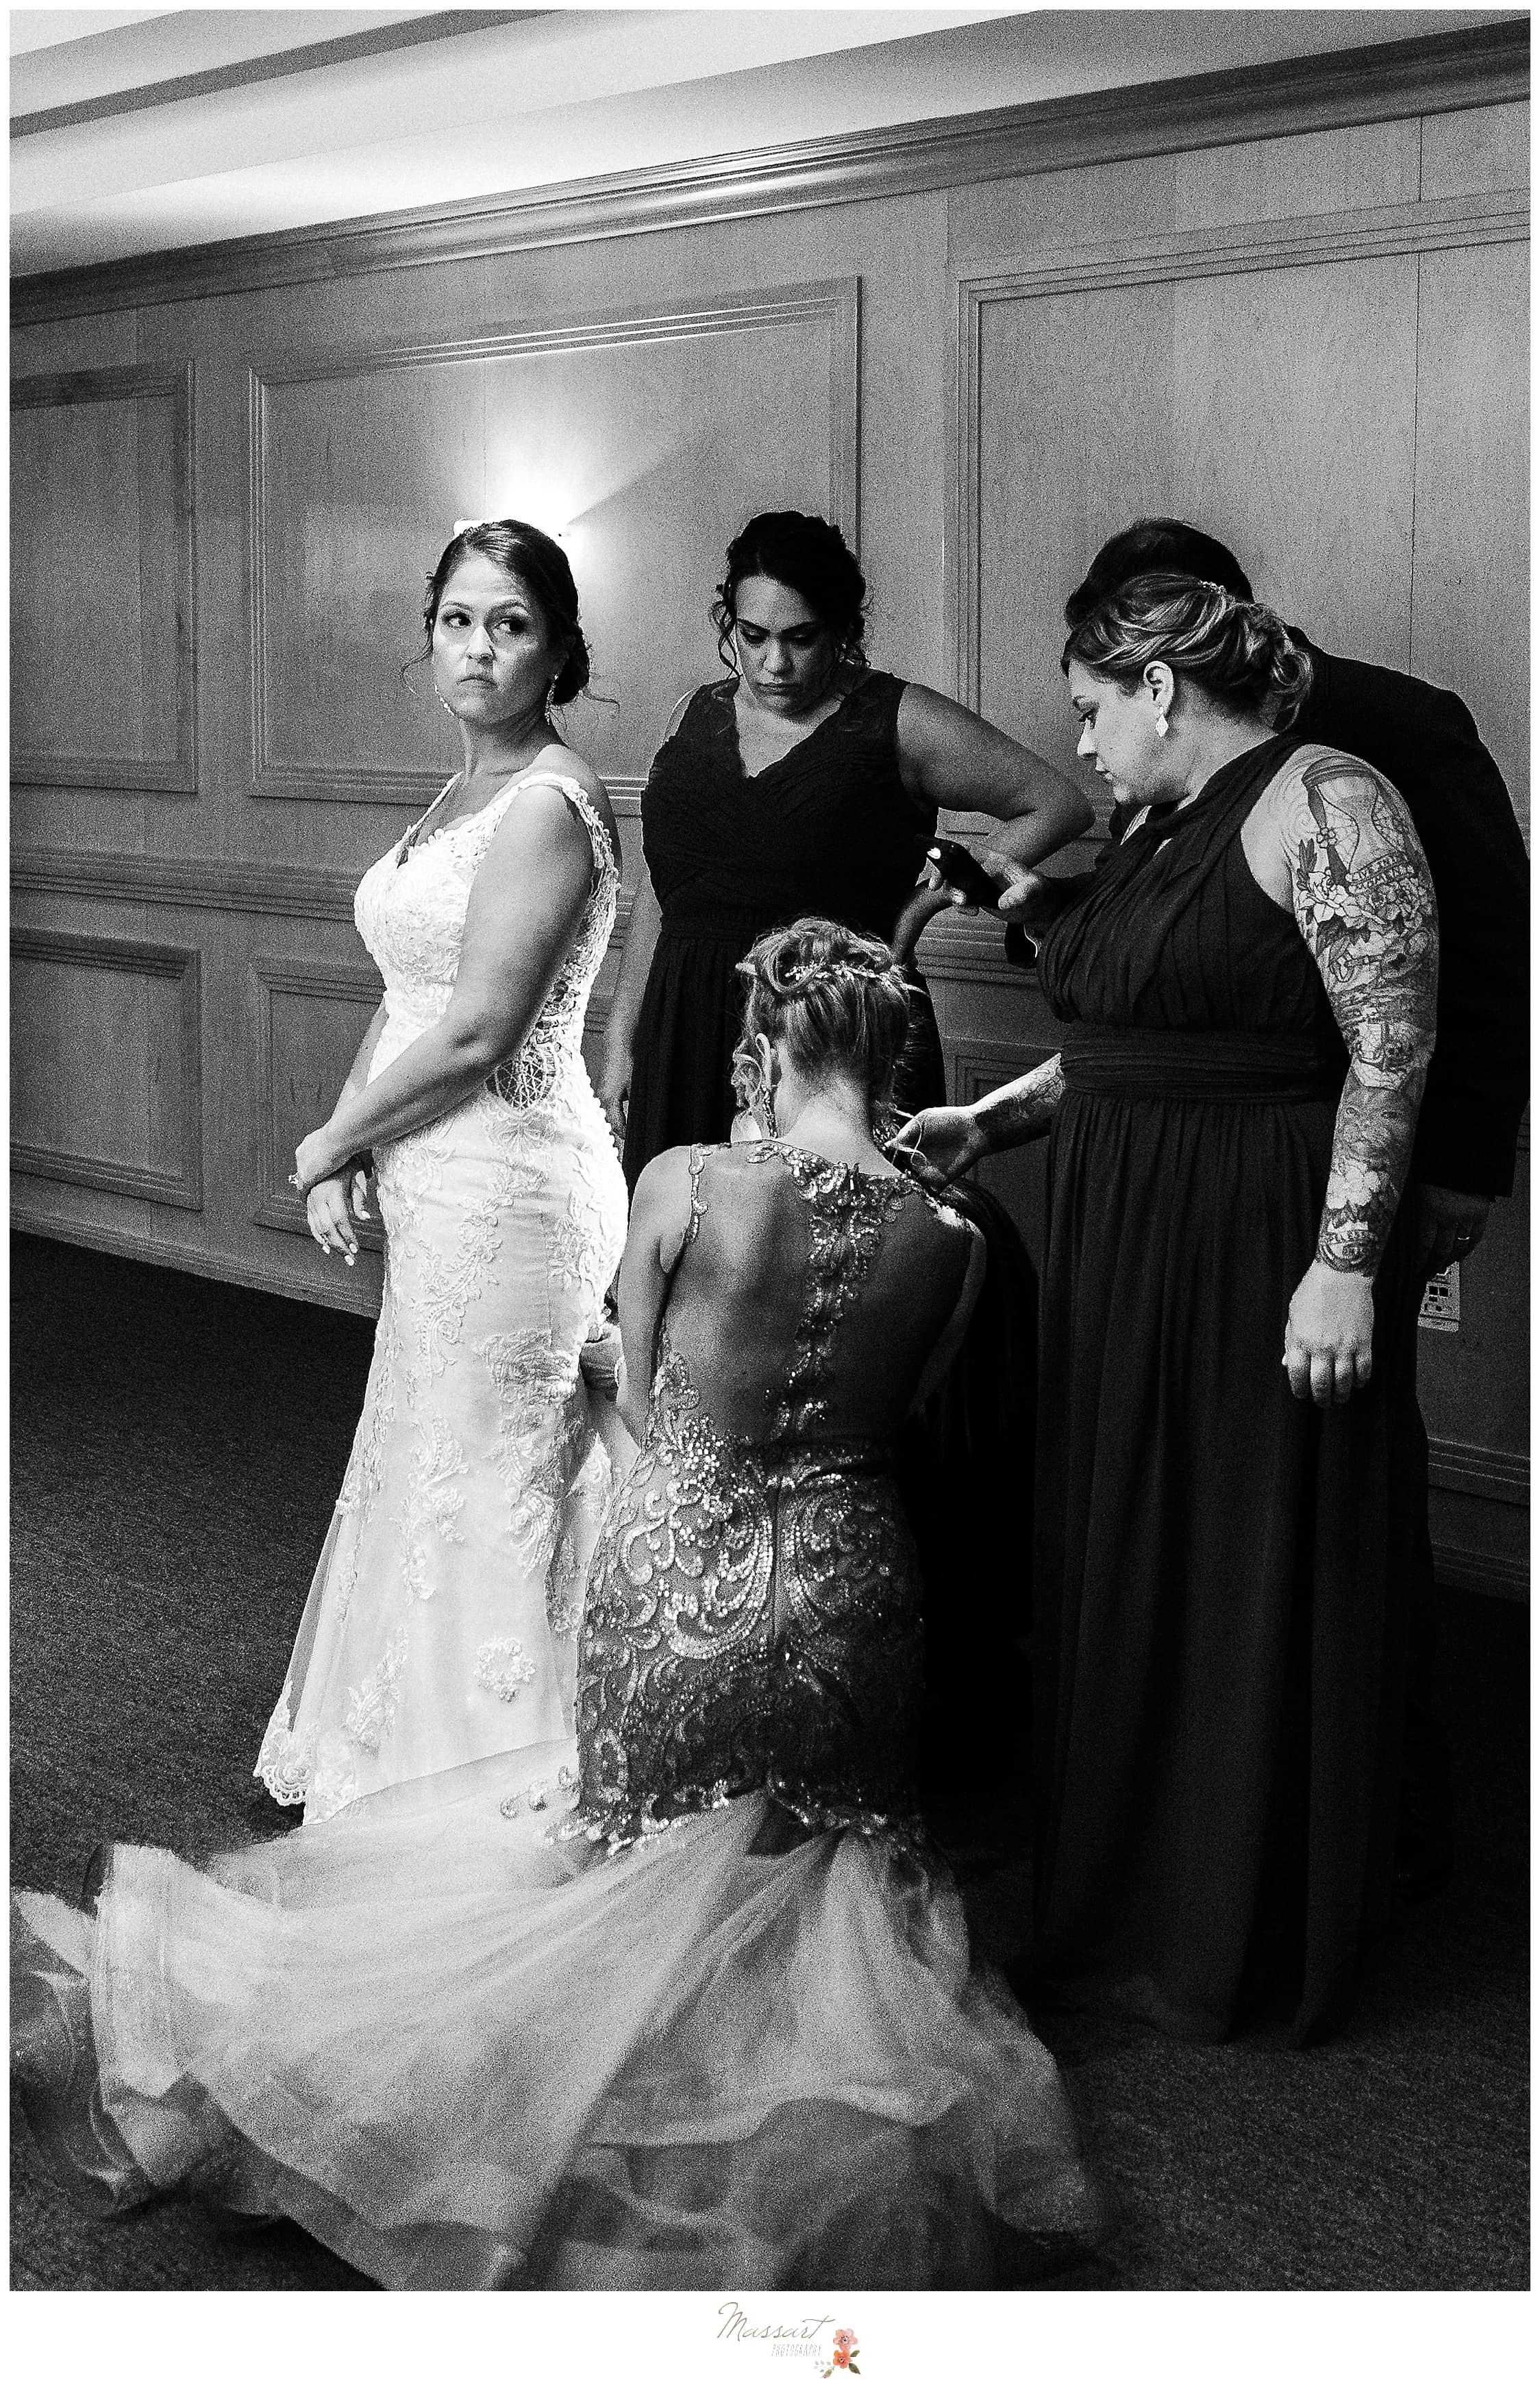 Bridesmaids bustle wedding gown for bride before Crowne Plaza in Warwick RI wedding reception